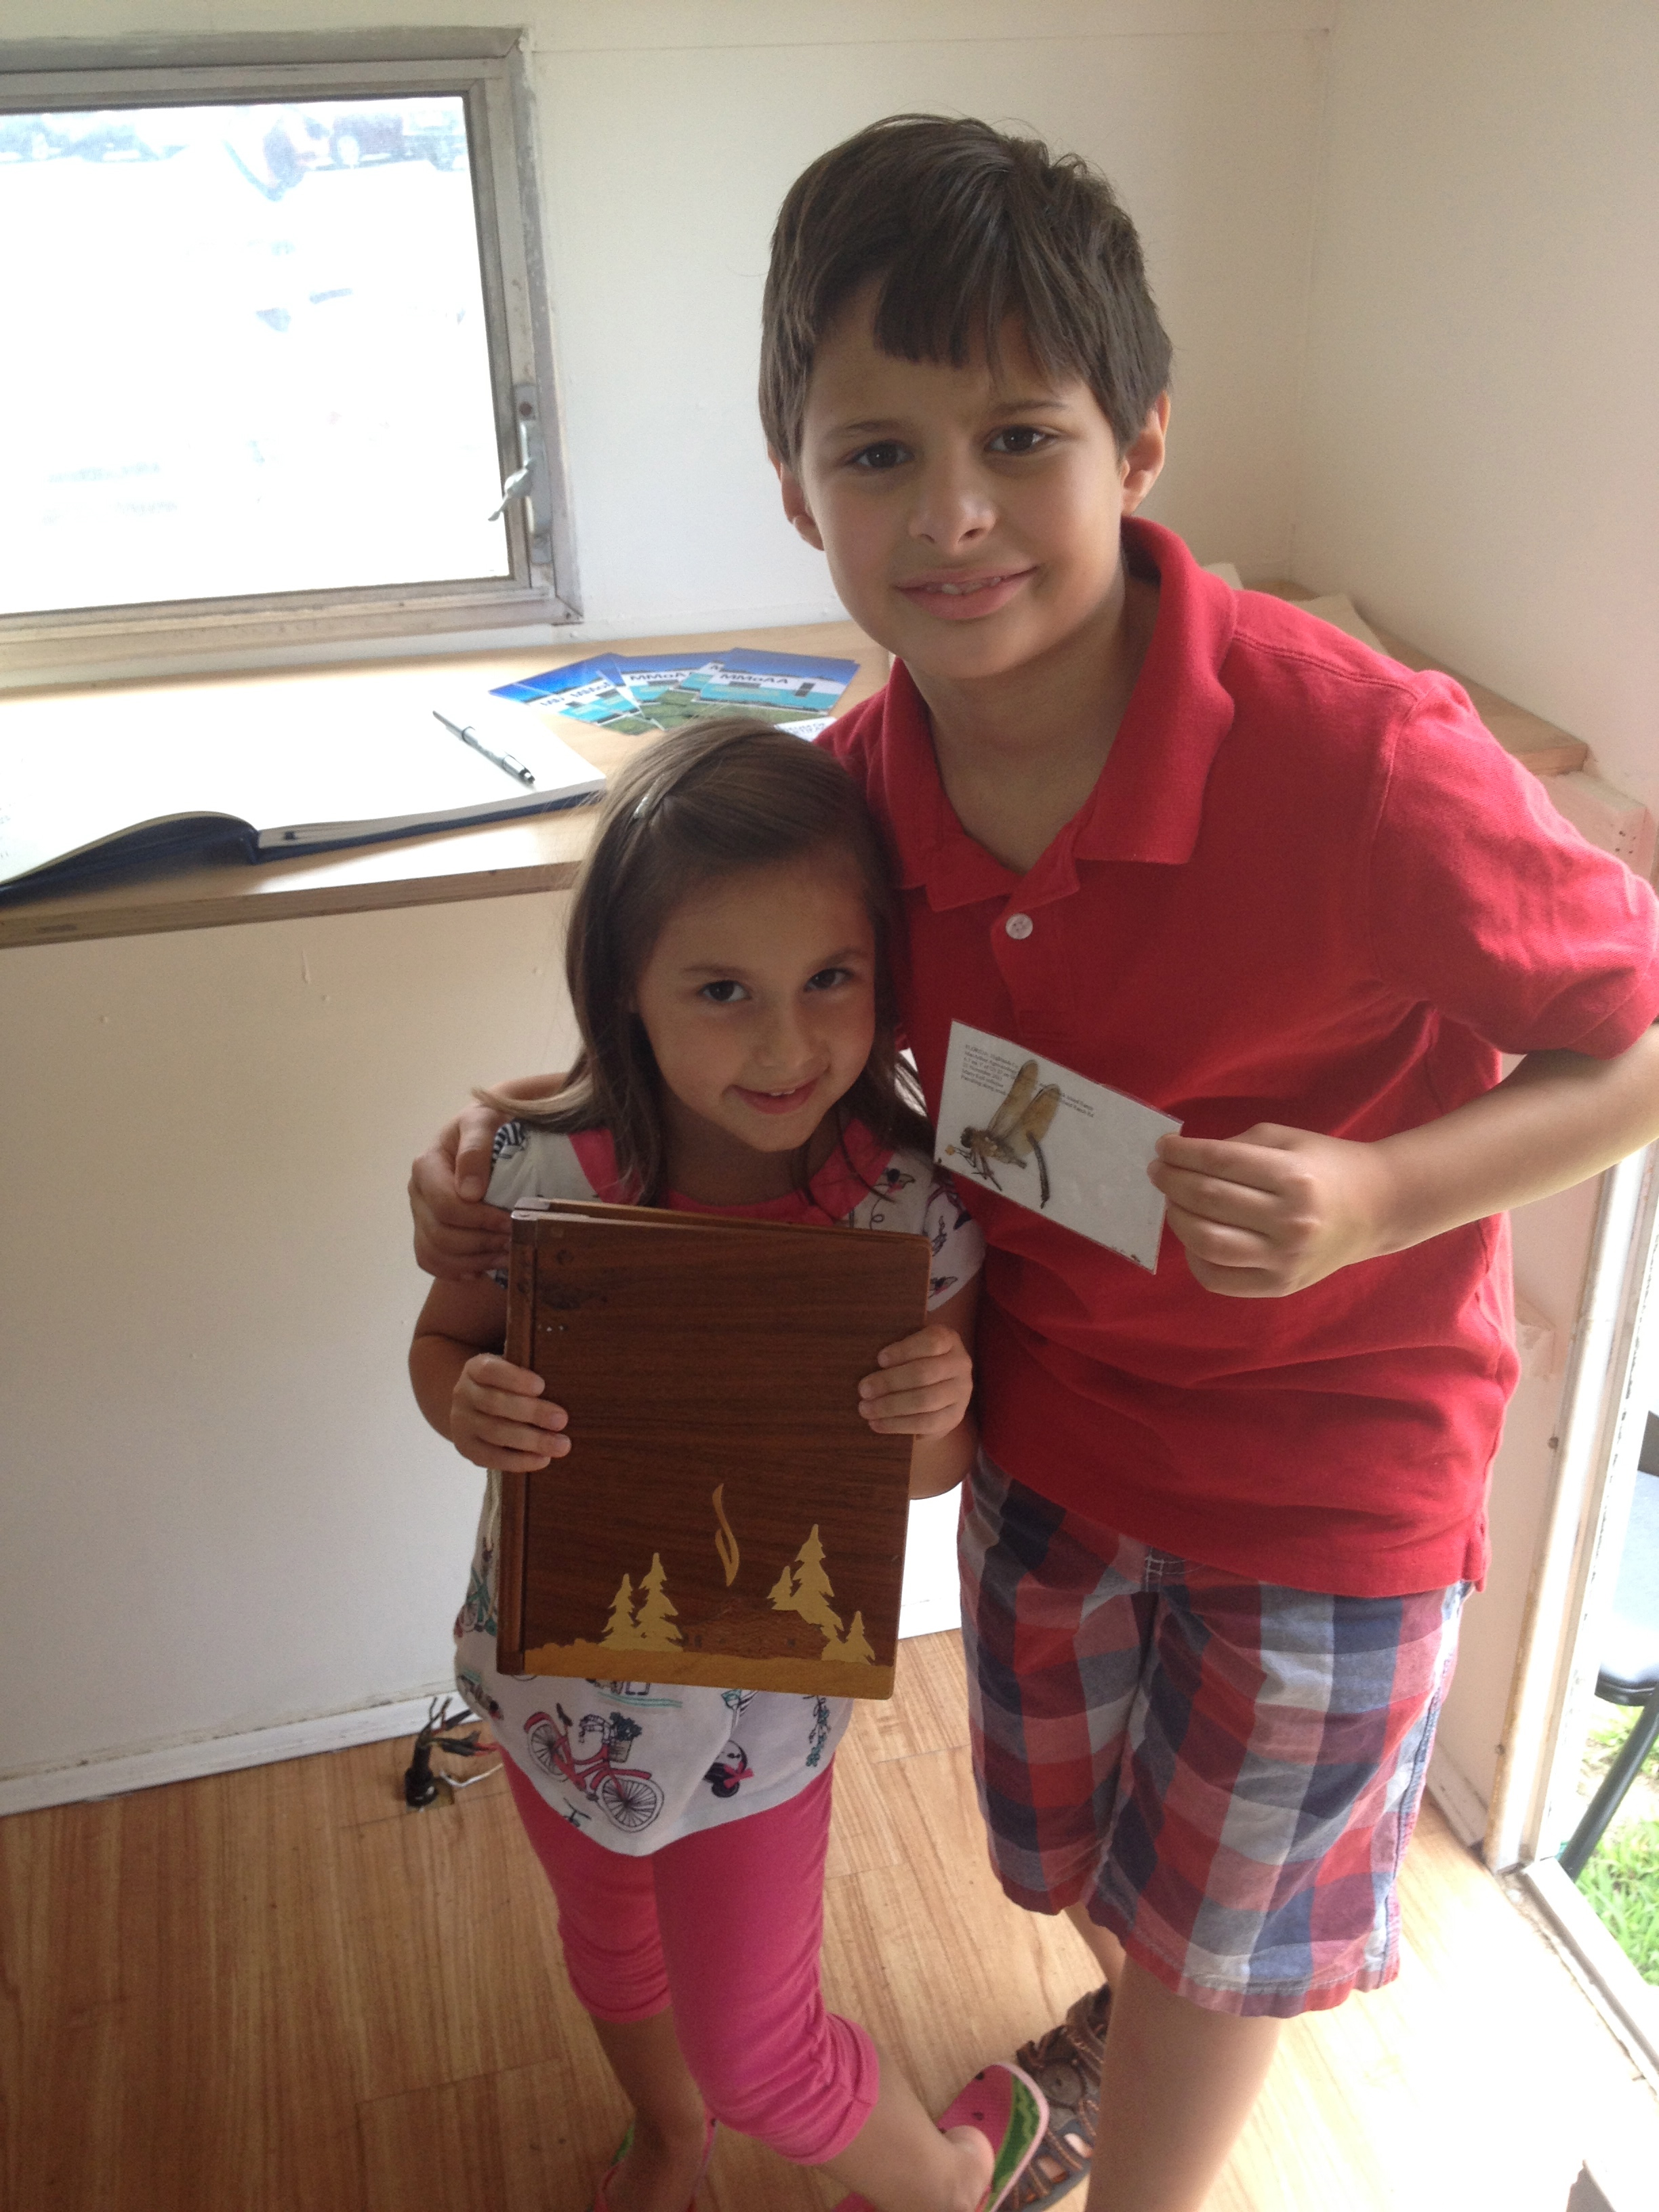 Siblings choose their favorite artifacts inside MMoAA at the Edgewood Park Farmer's Market.